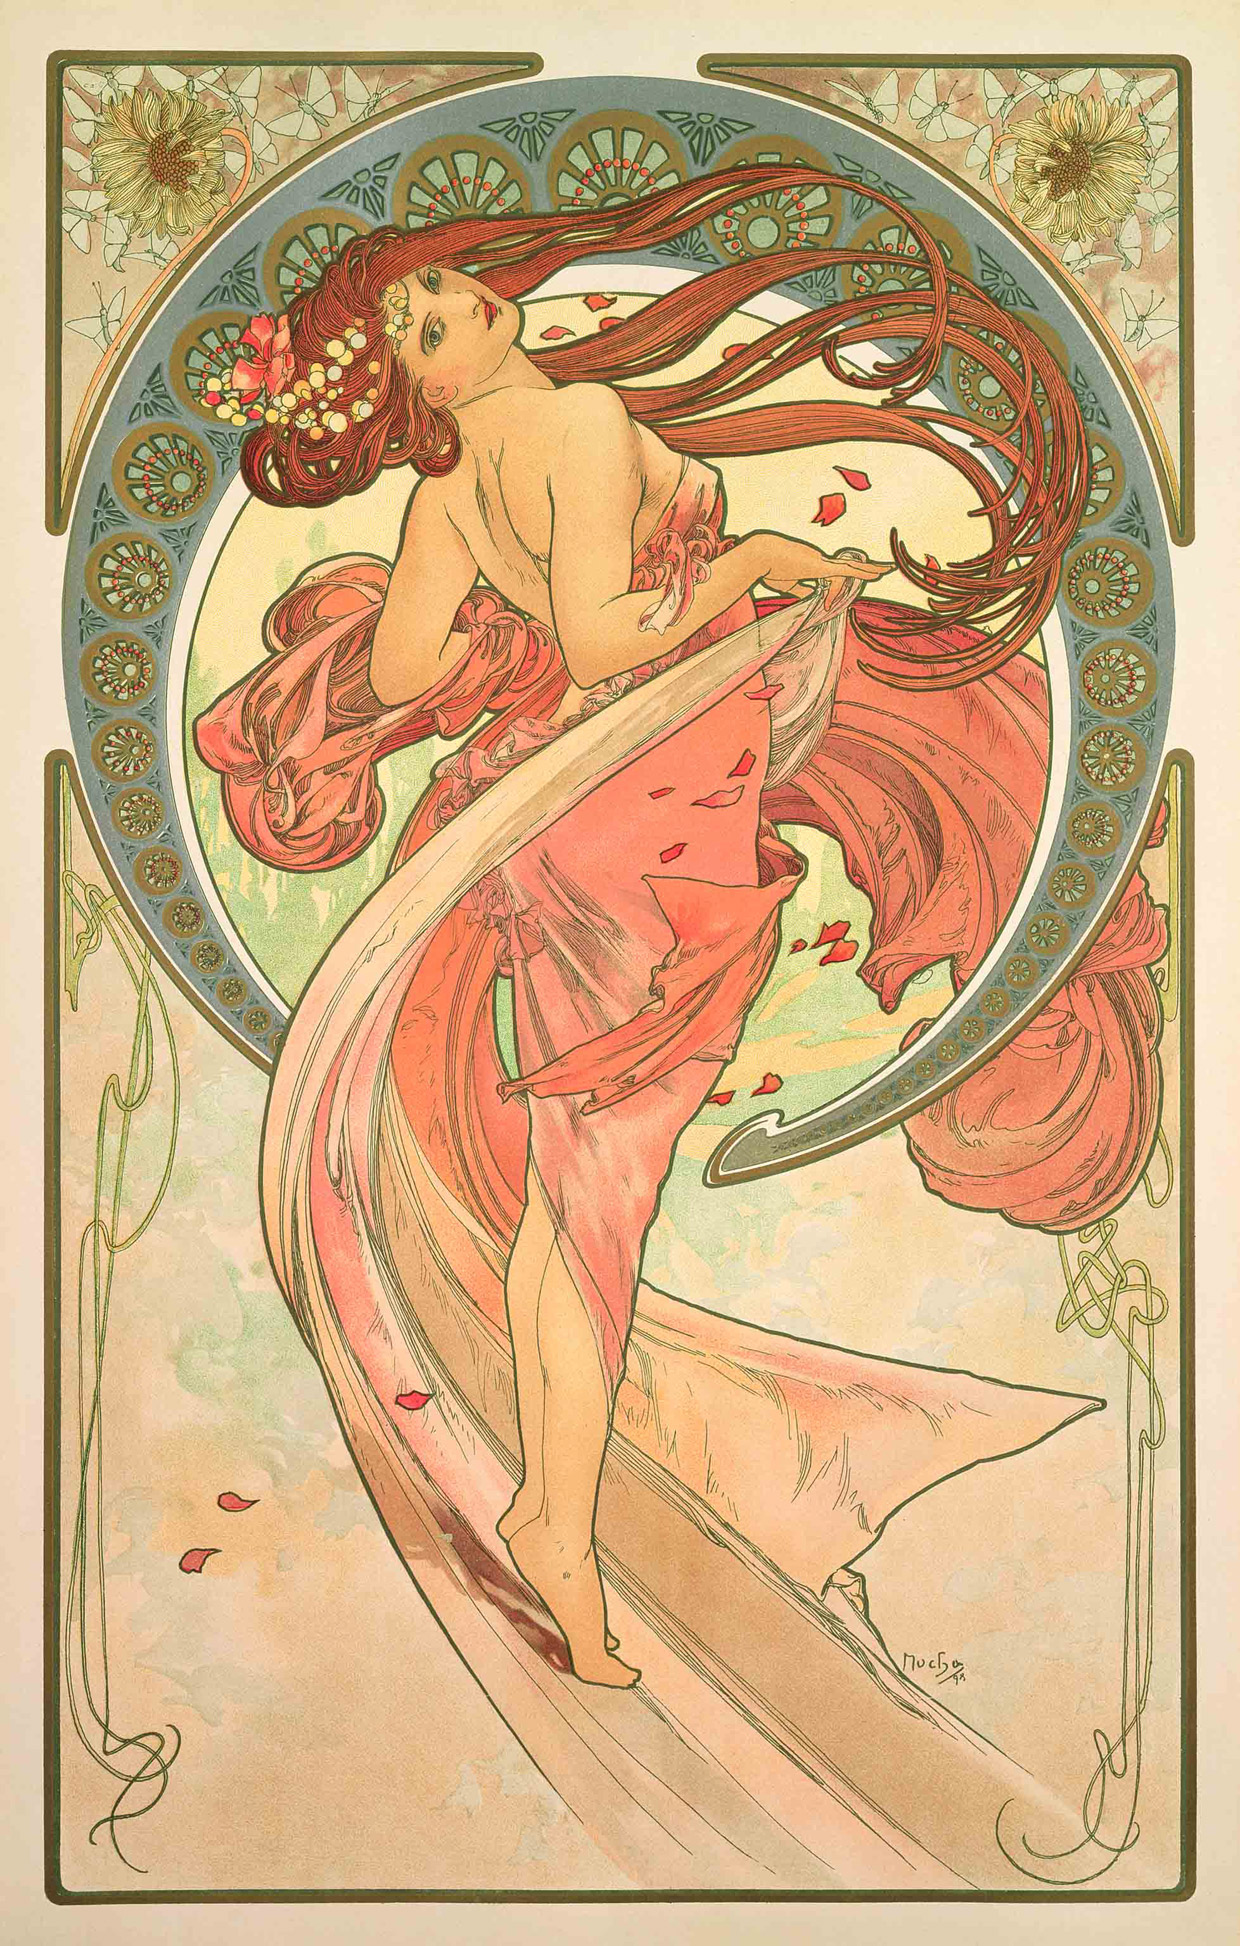 COMING UP: ALPHONSE MUCHA